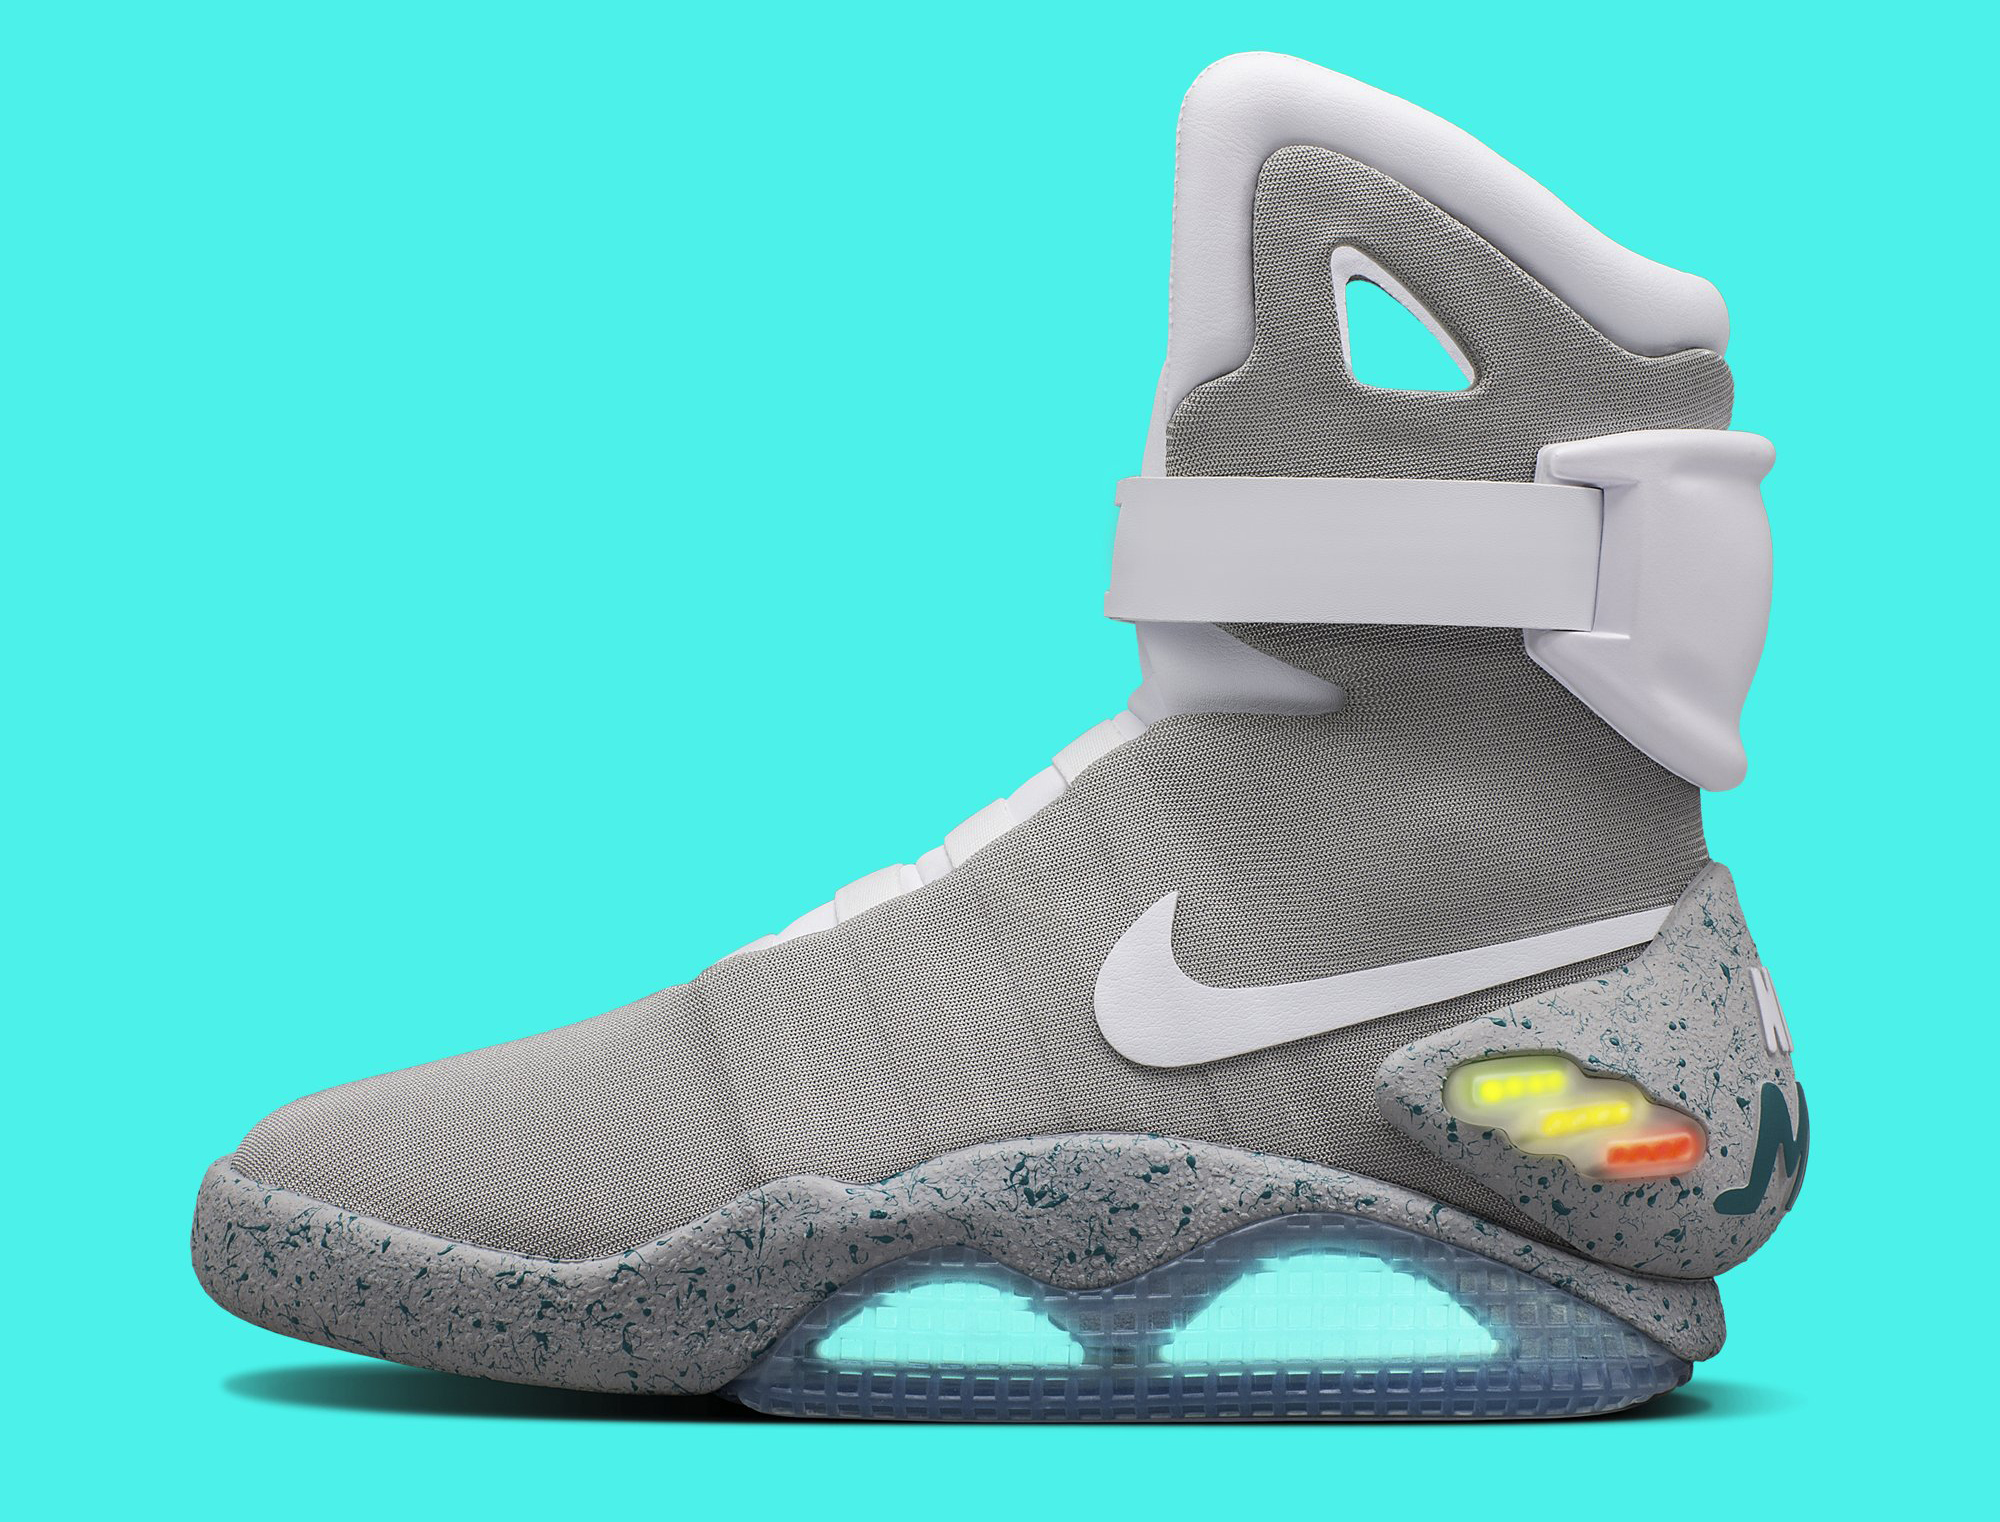 buy nike back to the future shoes